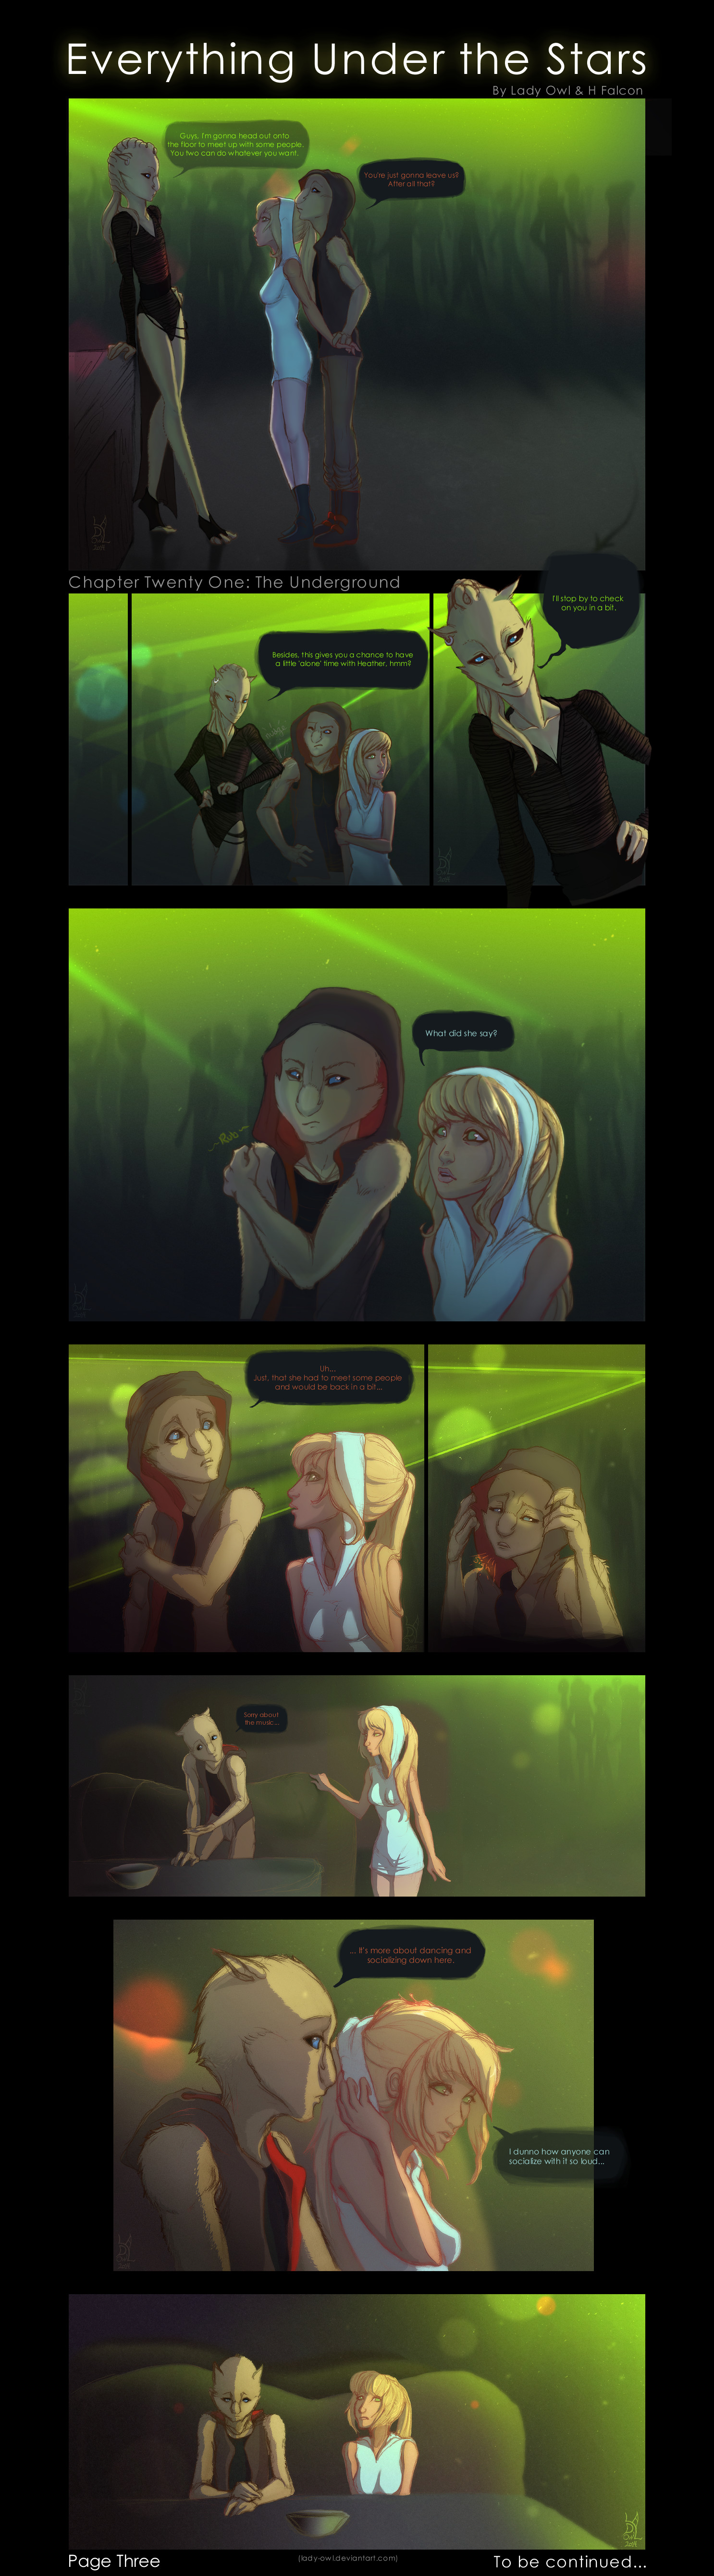 EUTS - Ch21:The Underground - Comic Page 3 by Lady-Owl